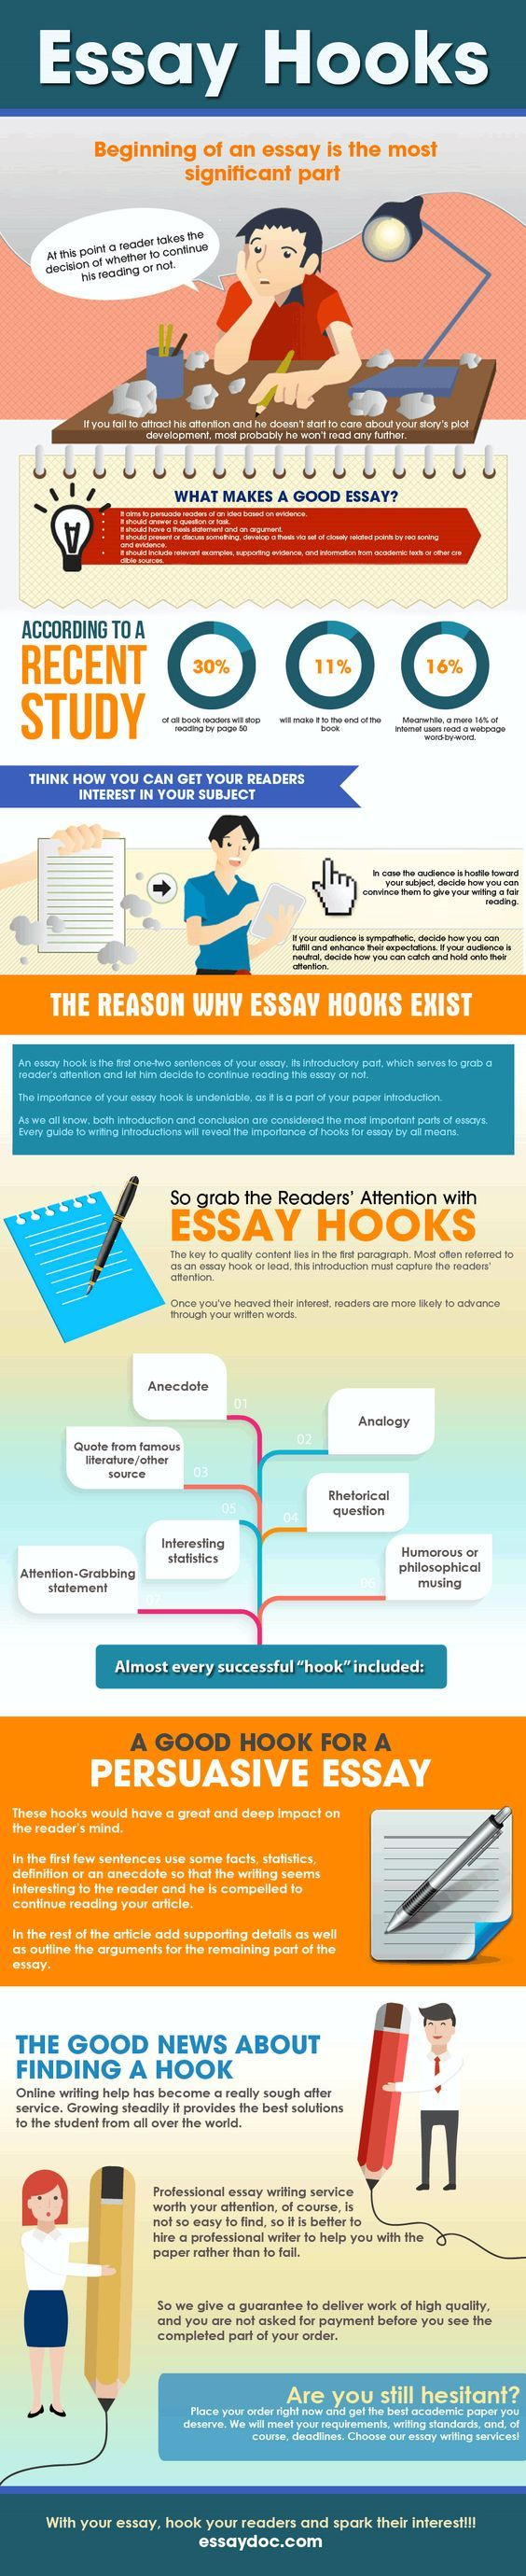 best essay writing tips ideas better synonym  tips on essay writing editing and proofreading services editberry com argumentative